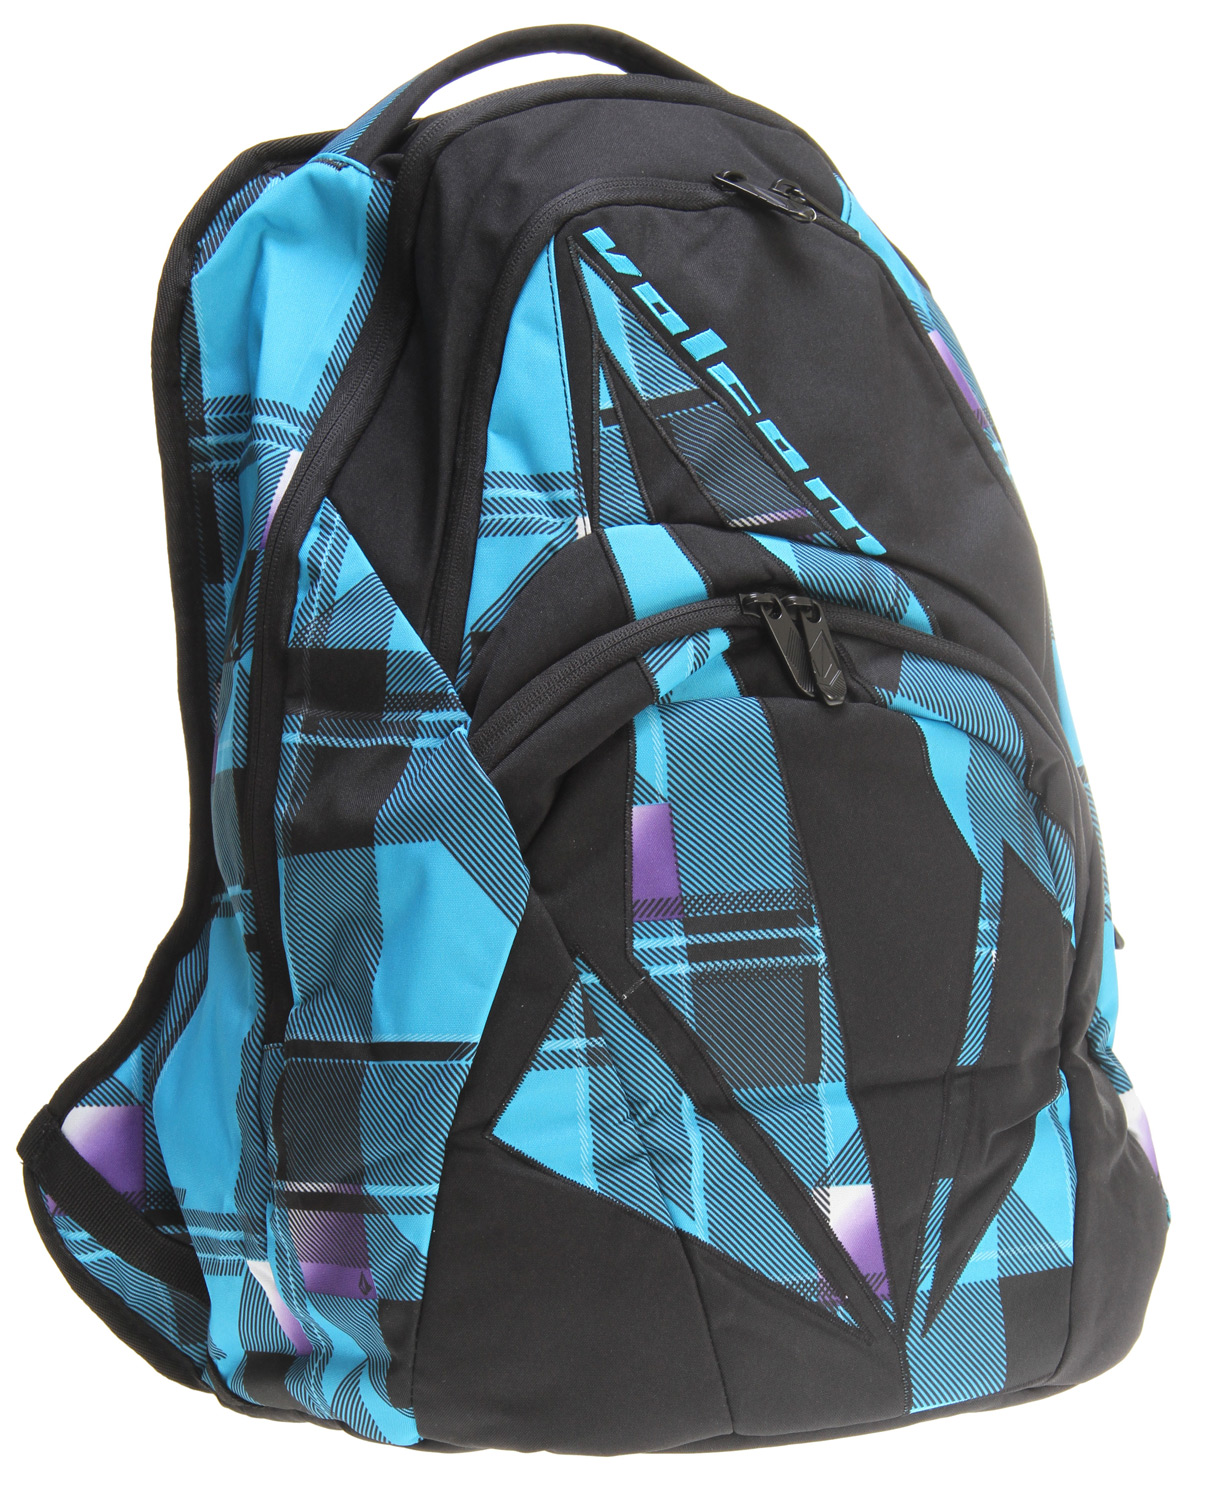 "Surf Are you tired of all the horrible looking back packs out there for sale? Don't you wish there where better looking back packs that caught your interest? Are you an adrenalin junkie? Do you love board sports? Well if you are into board sports and love adrenalin then you will probably love this Volcom Purma Backpack it's a great looking back pack at a great price. It's a great way to express your inner adrenalin junkie and carry your books at the same time. It's very light weight and durable so you will be happy for some time to come.Key Features of the Volcom Purma Backpack: Dimensions: 17 3/4""H x 11 3/8""W x 6 3/4""D (47cm H x 32cm W x 18cm D) Volume: 1159 in; (21 Liters) Weight: 1.55 lb (.7 kg) 4 compartment/2 pocket backpack with Volcom print artwork Sold Individually/By Color100% Polyester - $33.95"